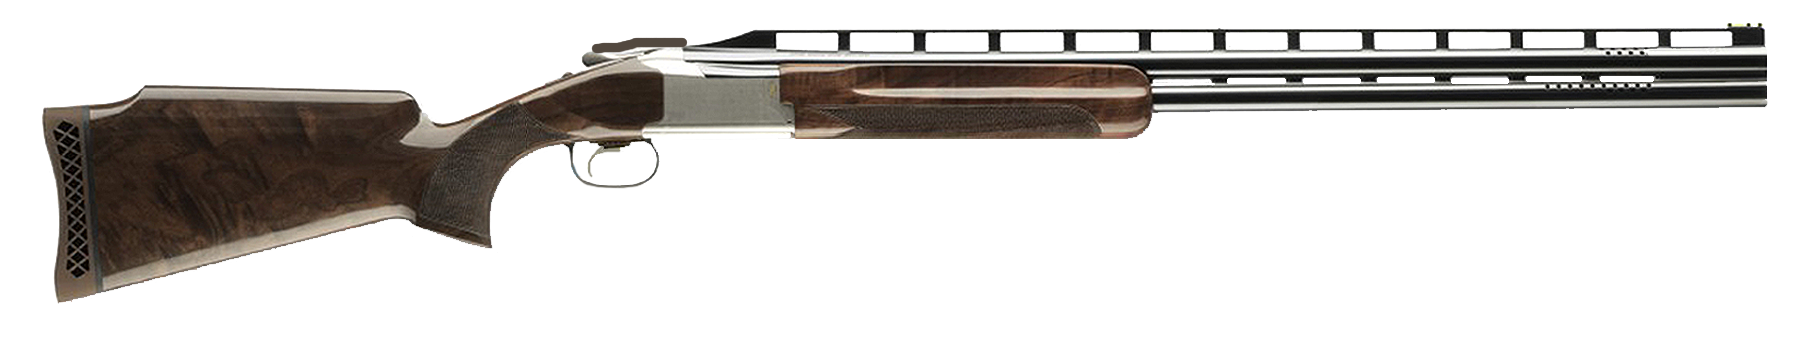 Browning Citori 725 Trap Over/Under Shotgun 2.75'' 12 Gauge 30'' Silver Nitride Steel - Black Walnut